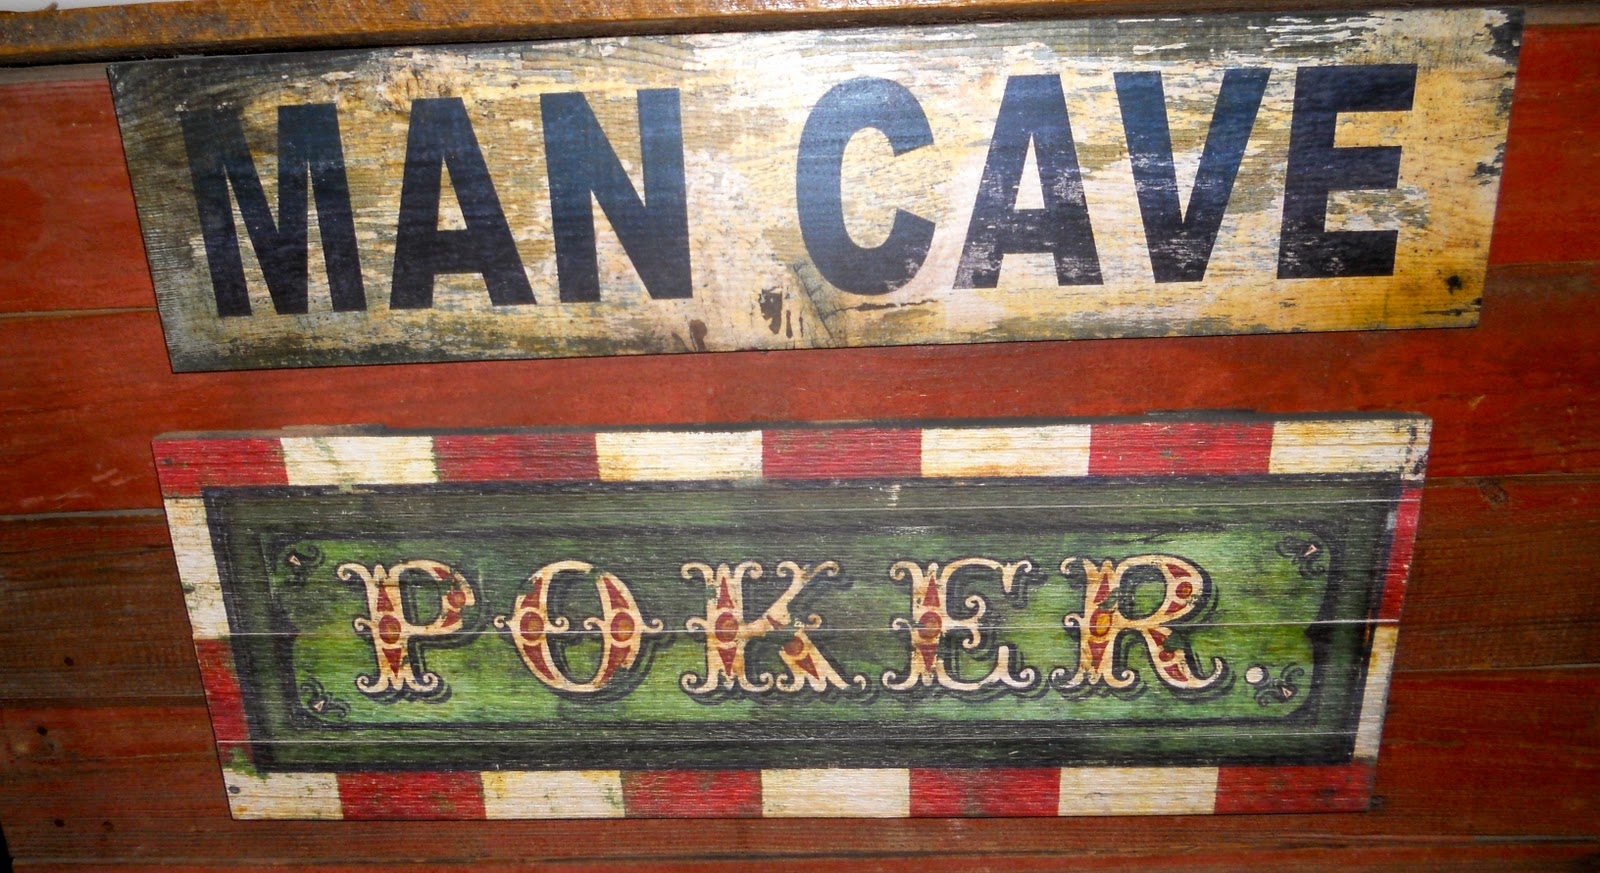 man cave decorating ideas | Designs WIKI - All About Designs